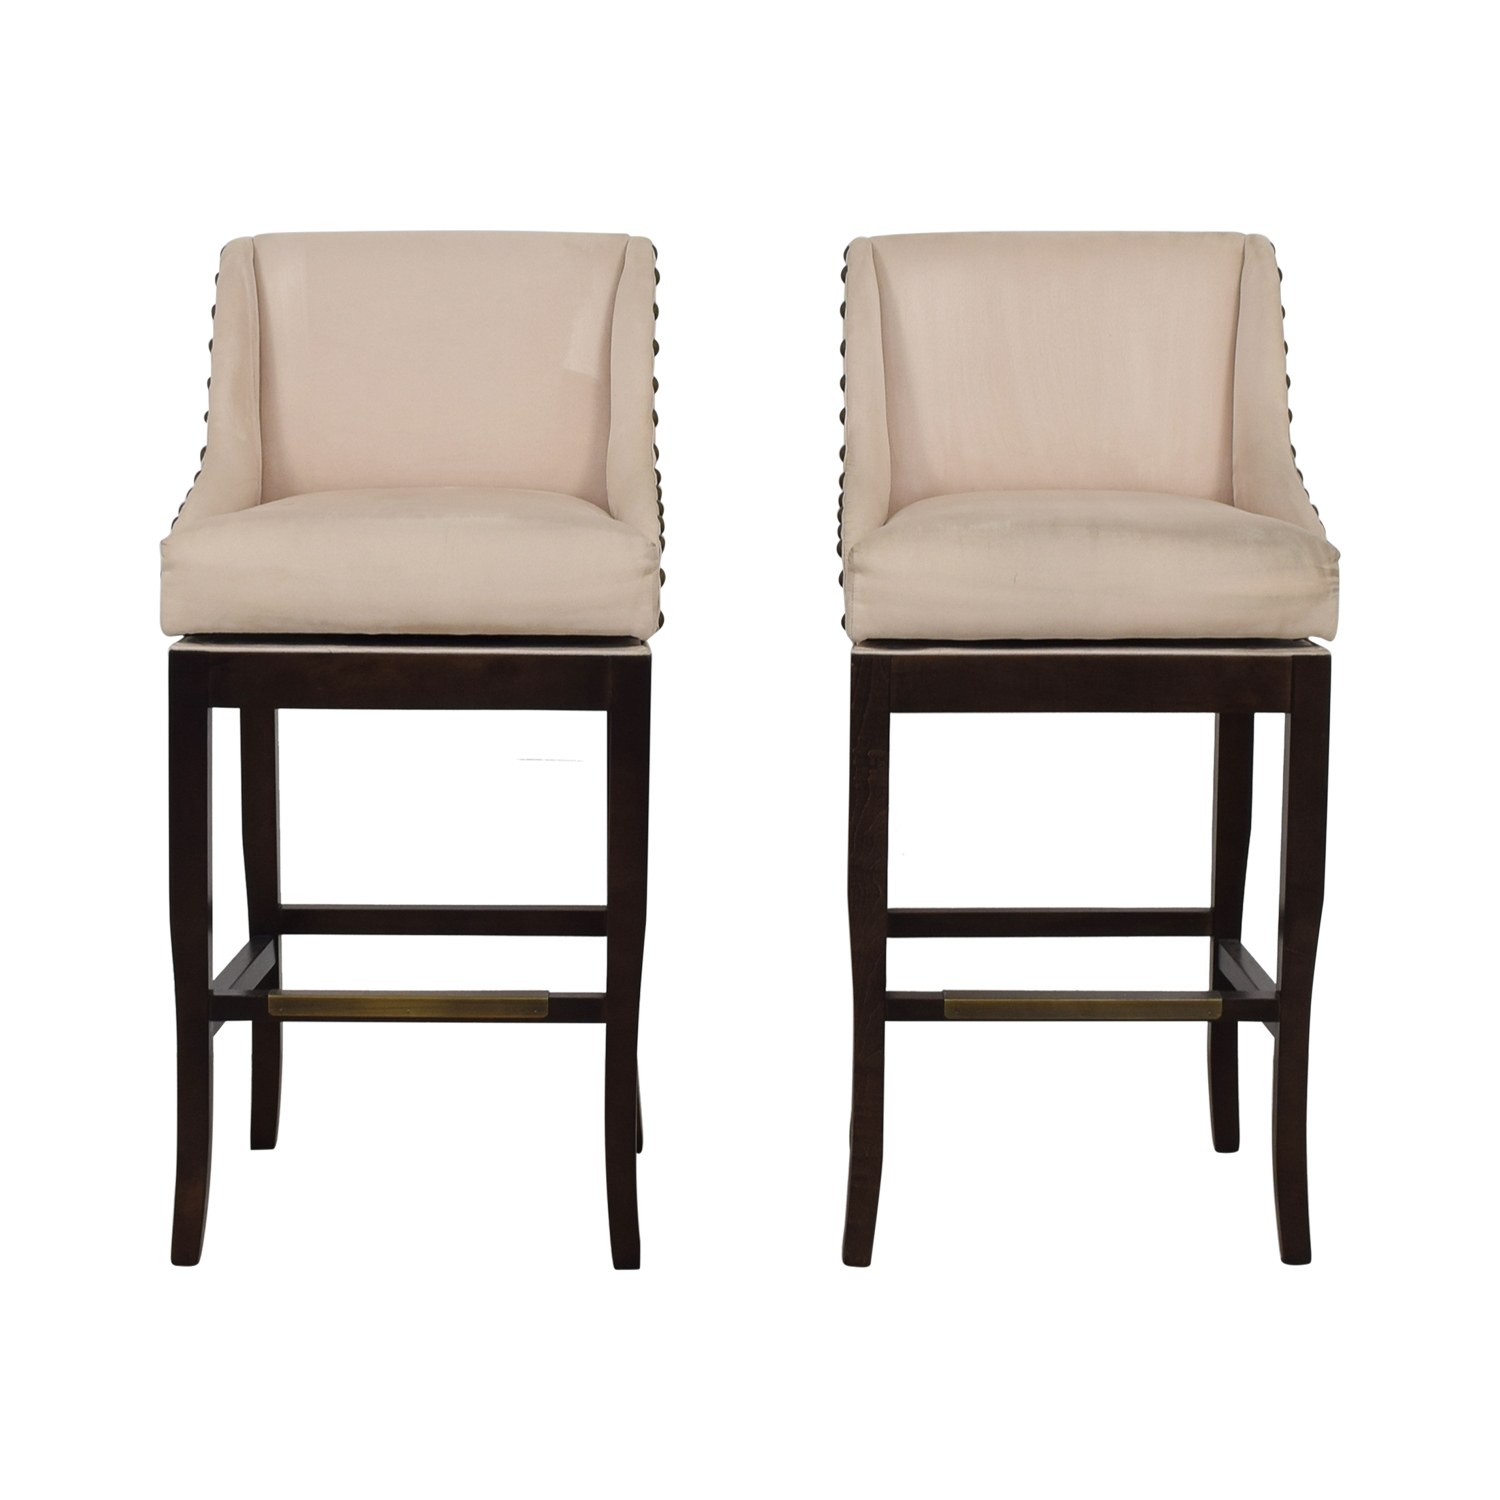 Ballard Designs Ballard Designs Marcello Beige Nailhead Bar Stools coupon